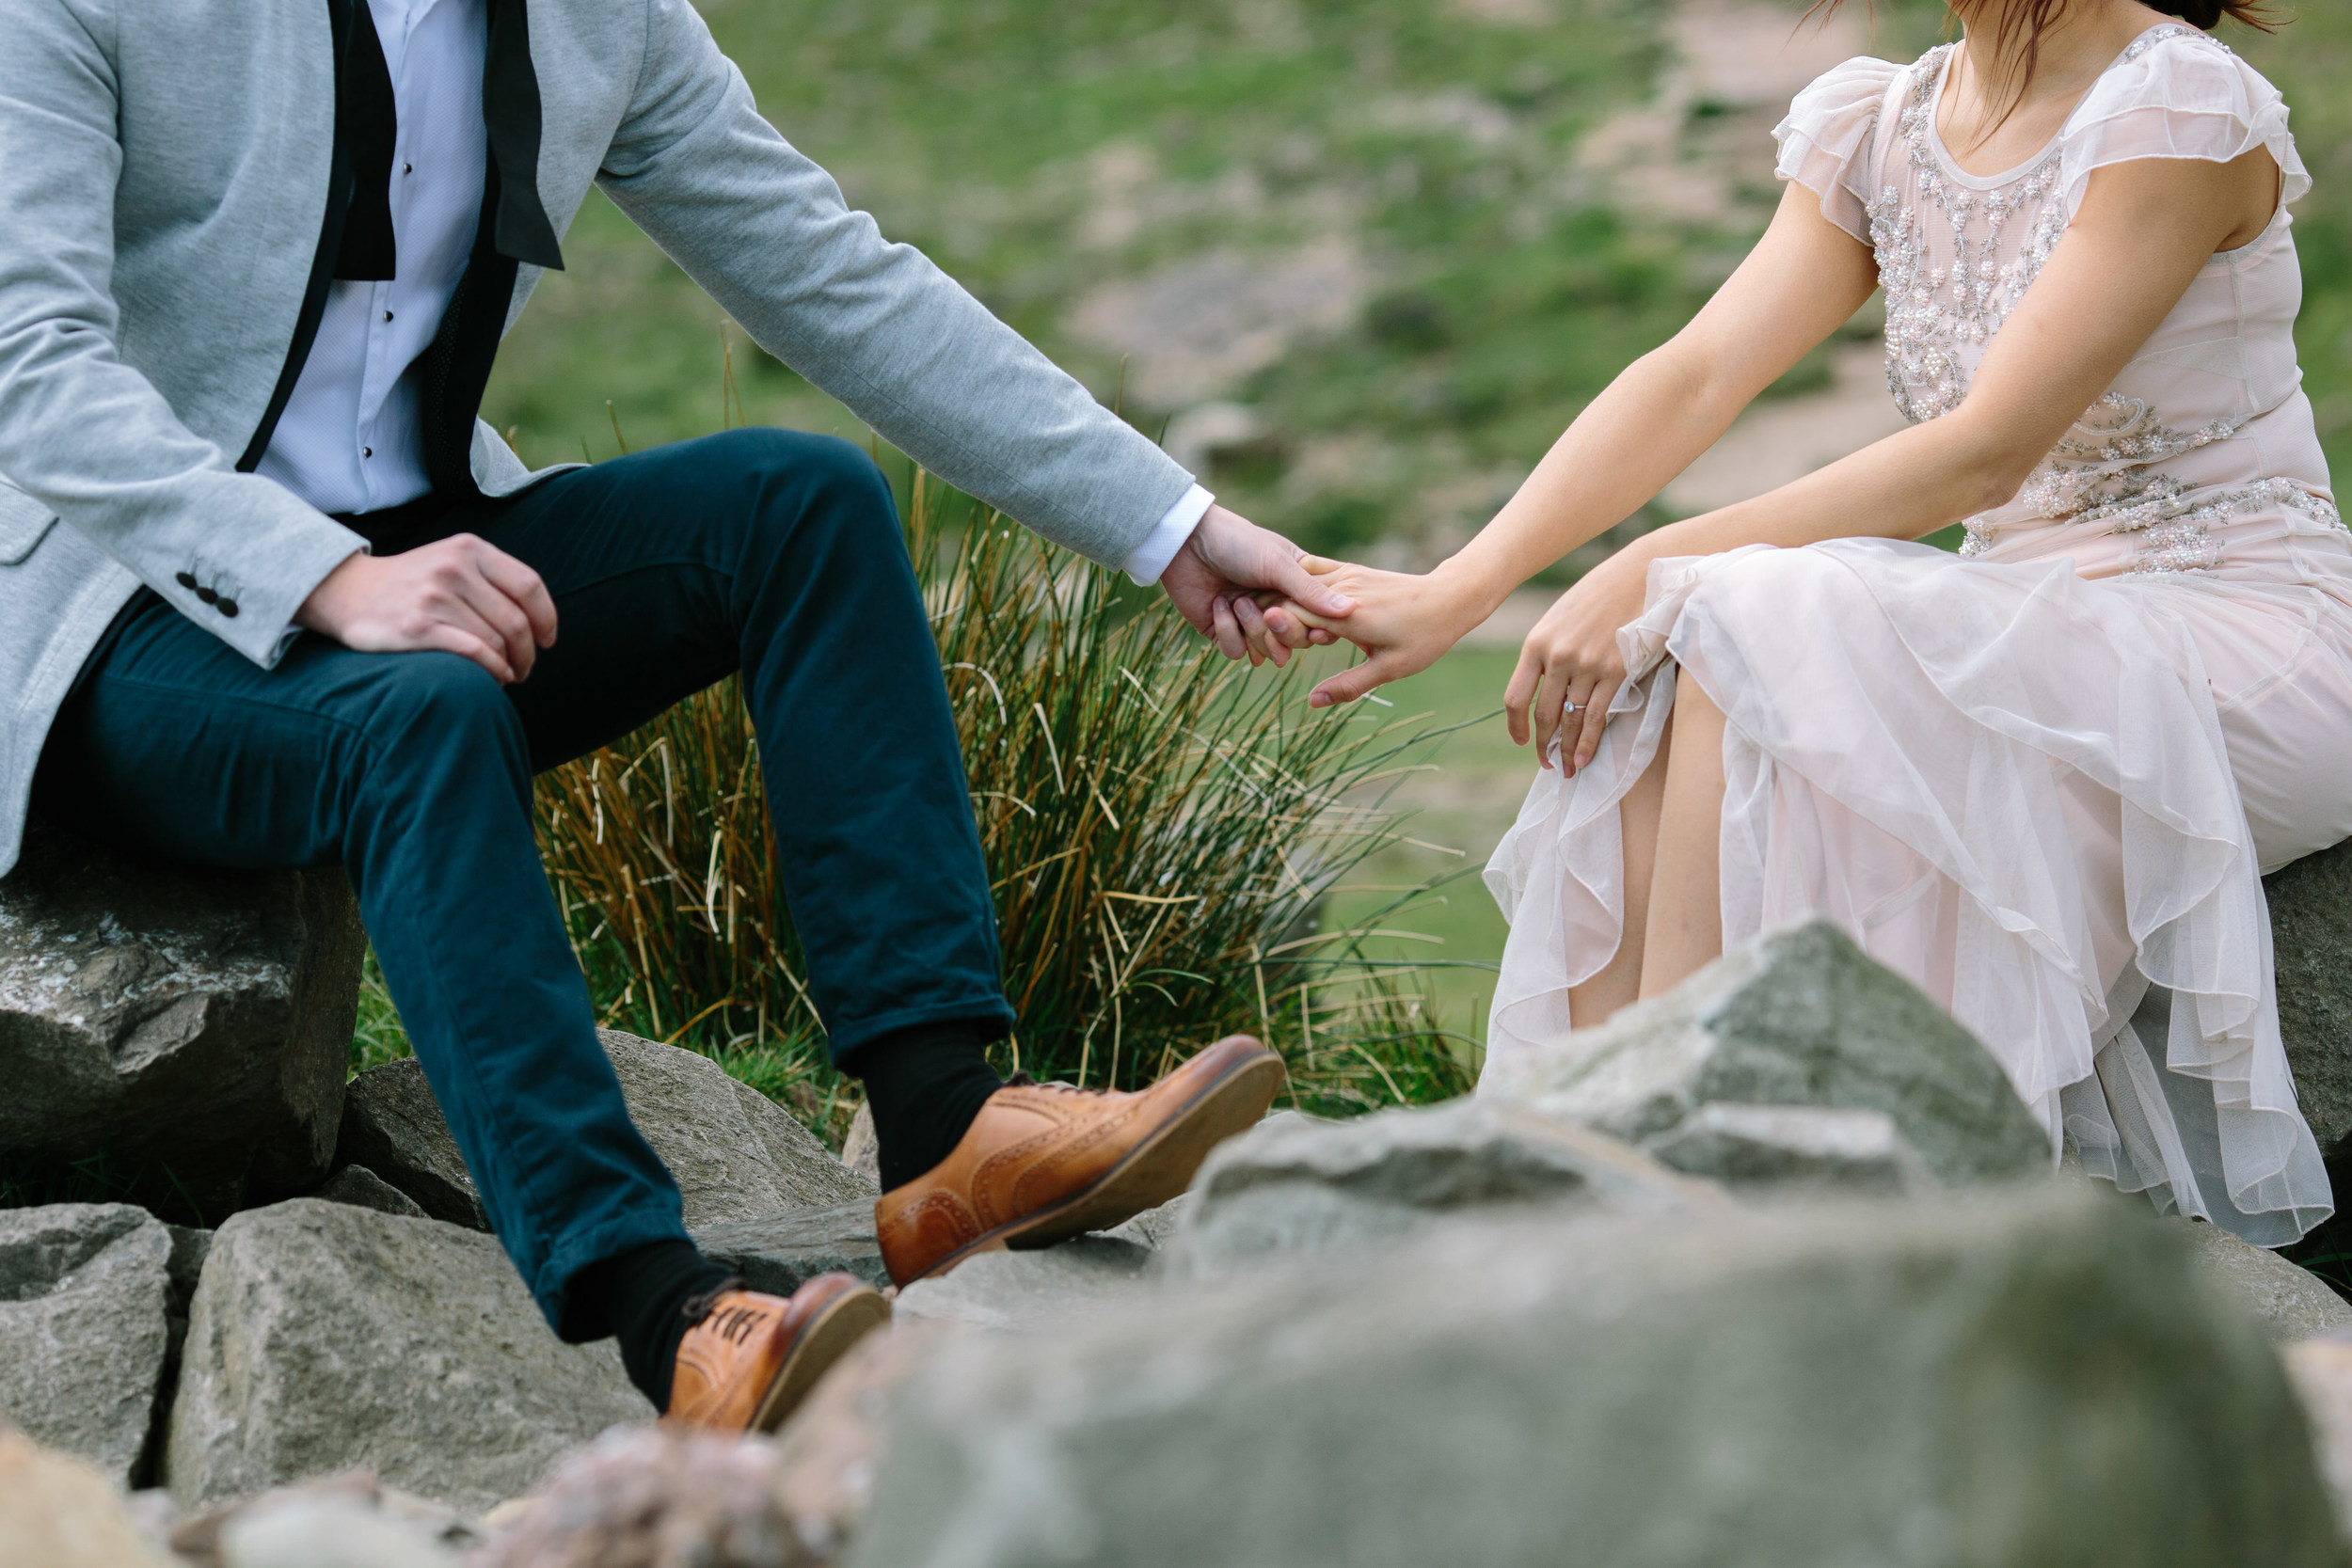 SuzanneLiPhotography-Fiona&Alan-106.jpg